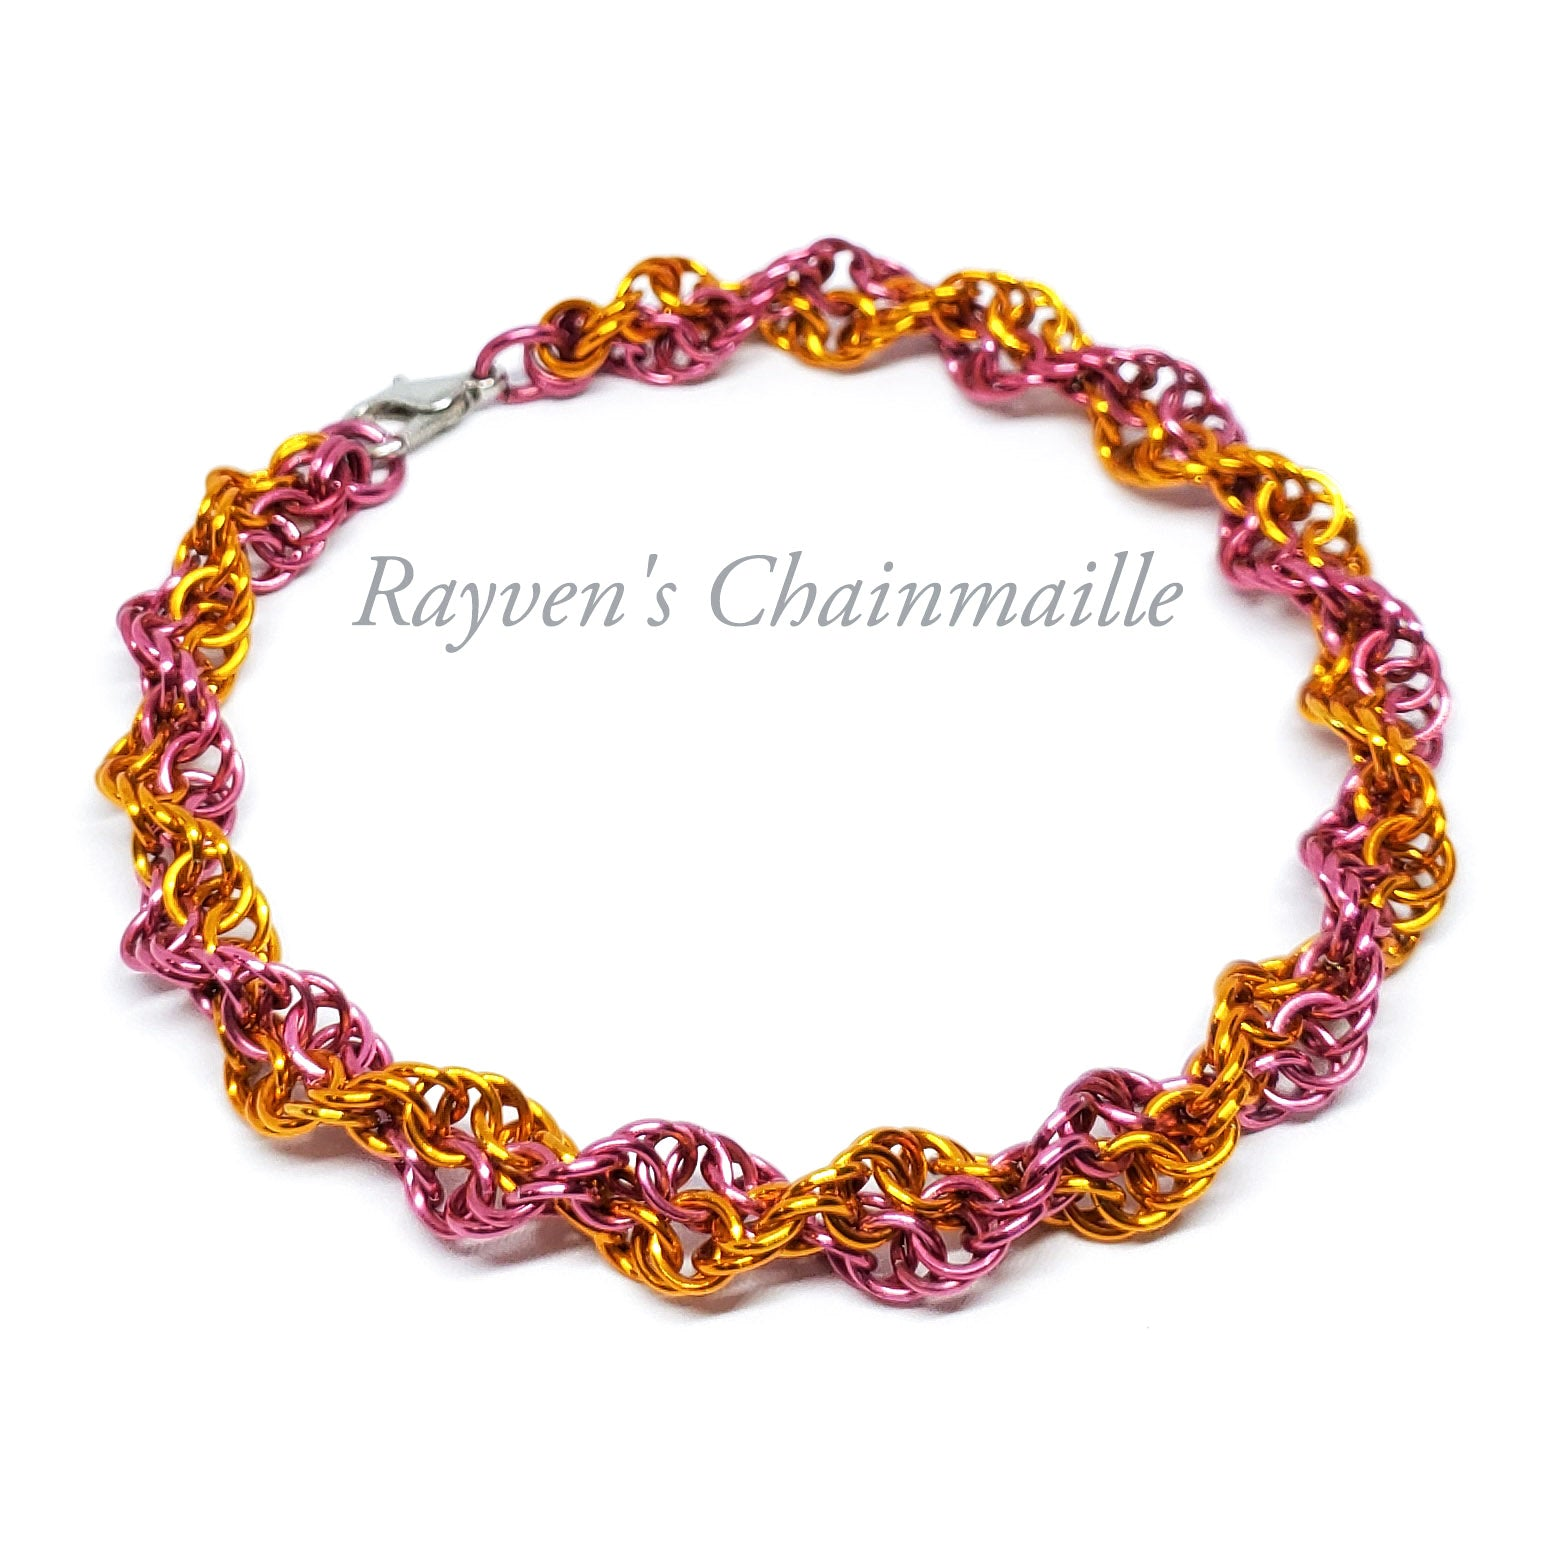 Rayven's Chainmaille| Orange & Dark Rose Double Helix Chainmaille Bracelet